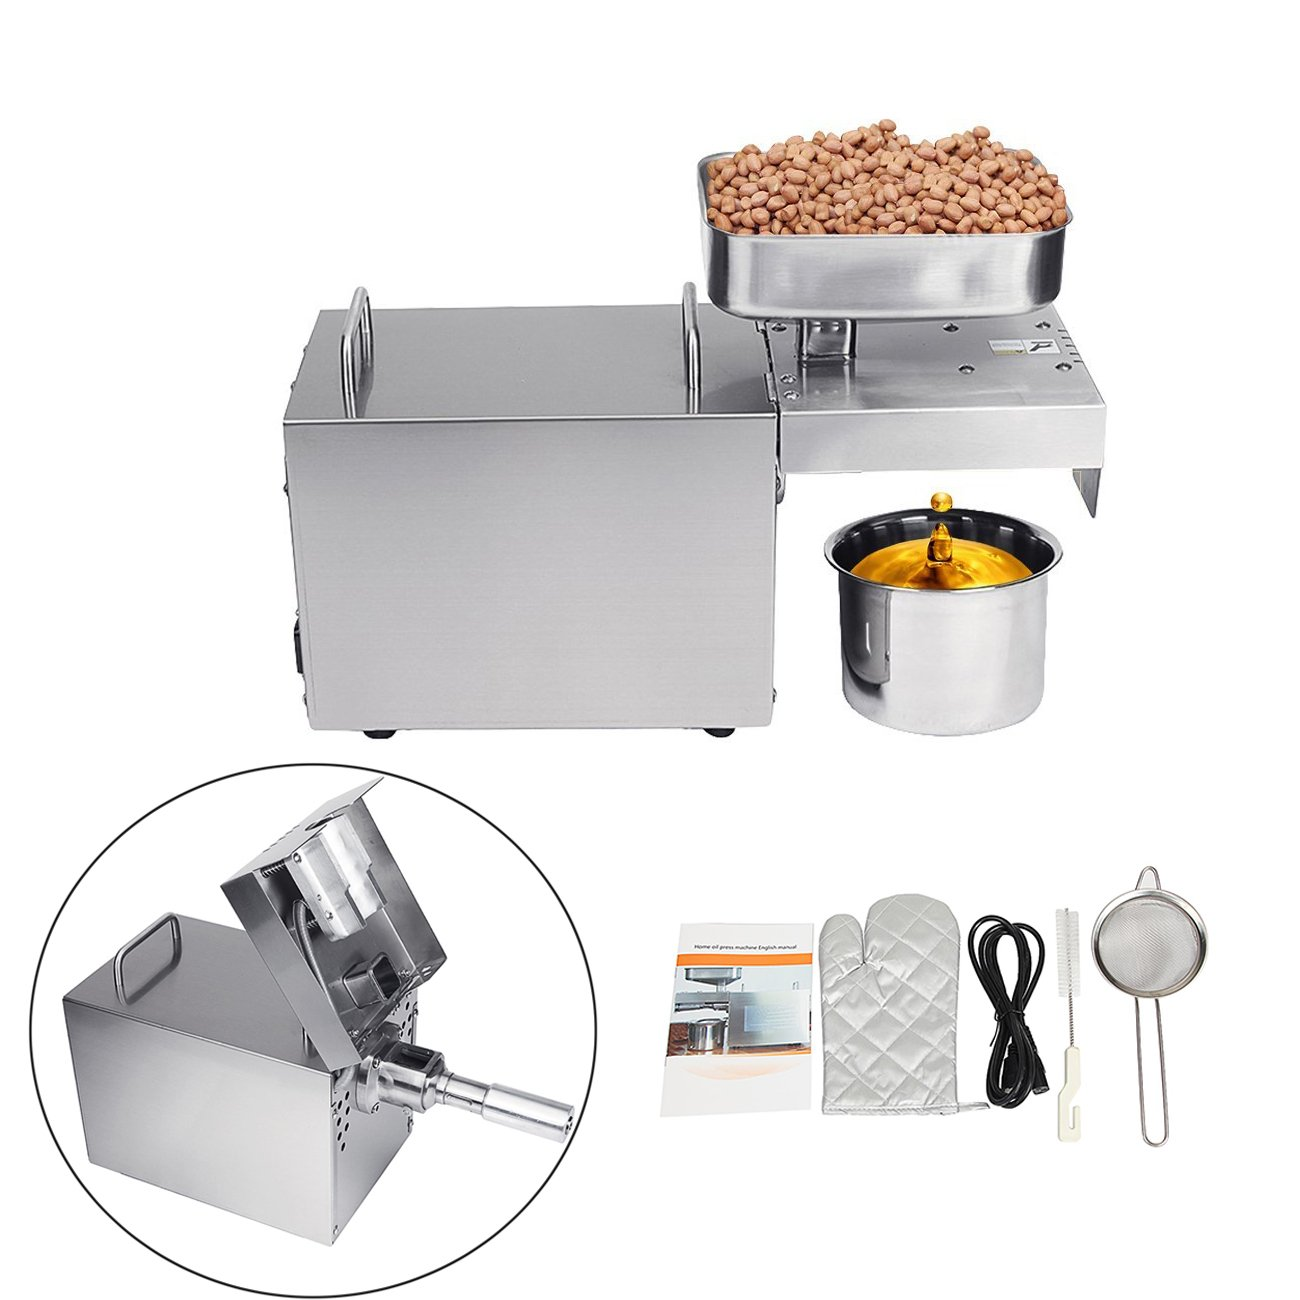 BEAMNOVA Automatic Oil Press Machine Commercial 304 Stainless Steel Peanut Nuts Seed Oil Expeller Extractor for Home